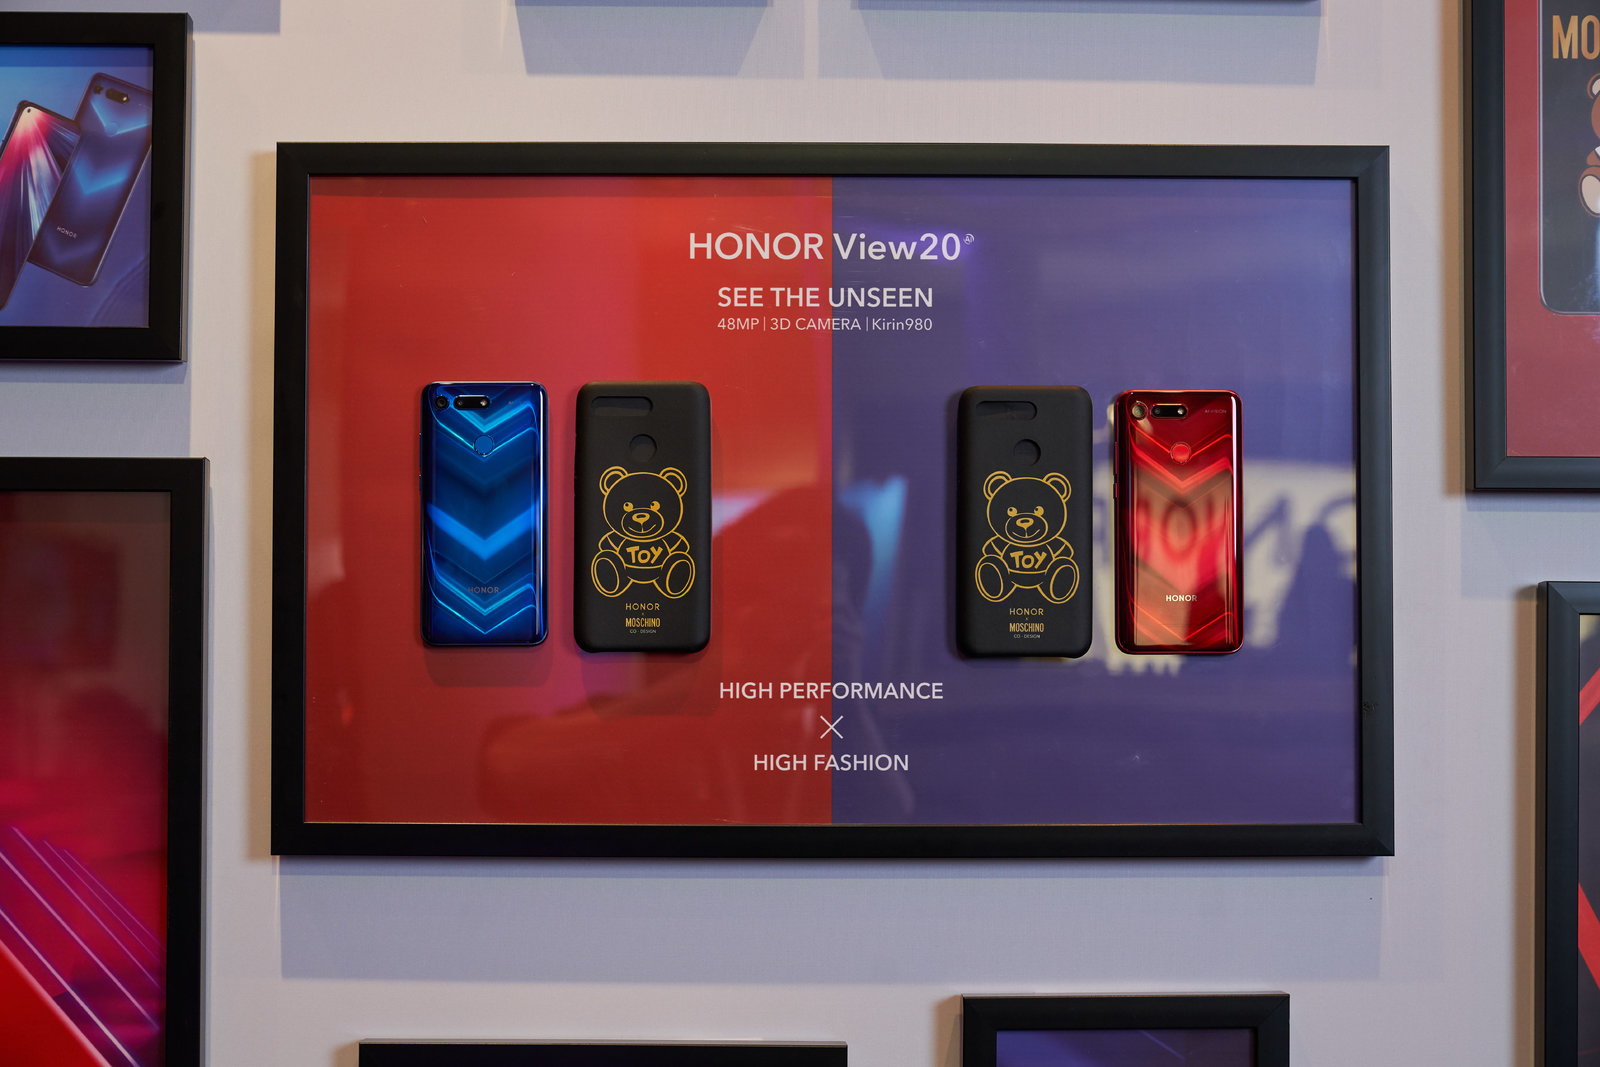 HONOR View 20 - 6